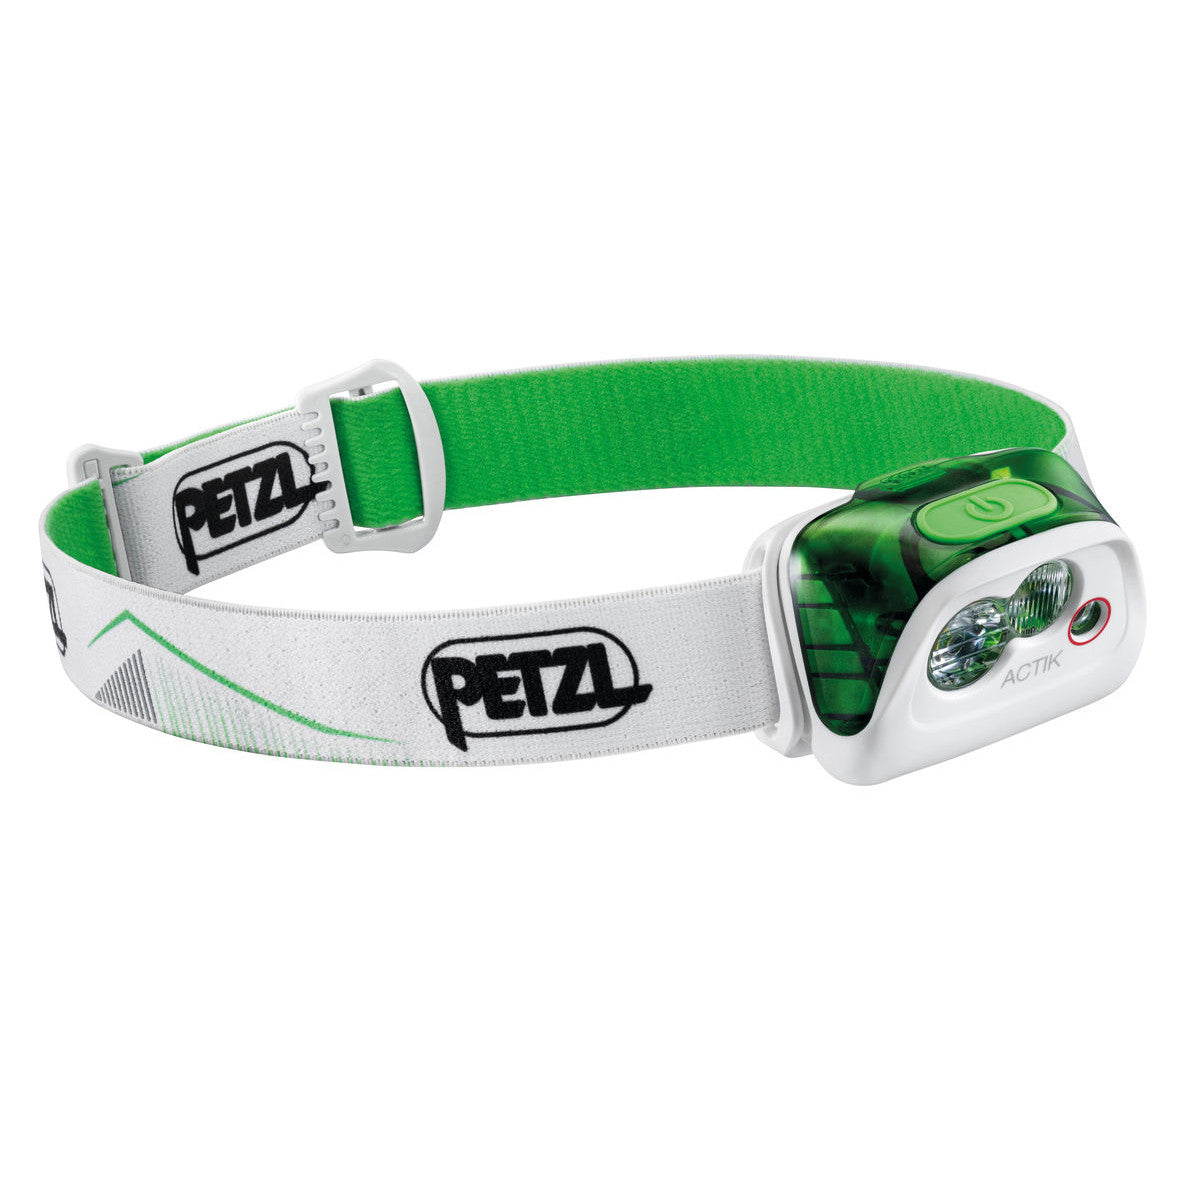 Petzl Actik Headtorch, front/side view in green and white colours